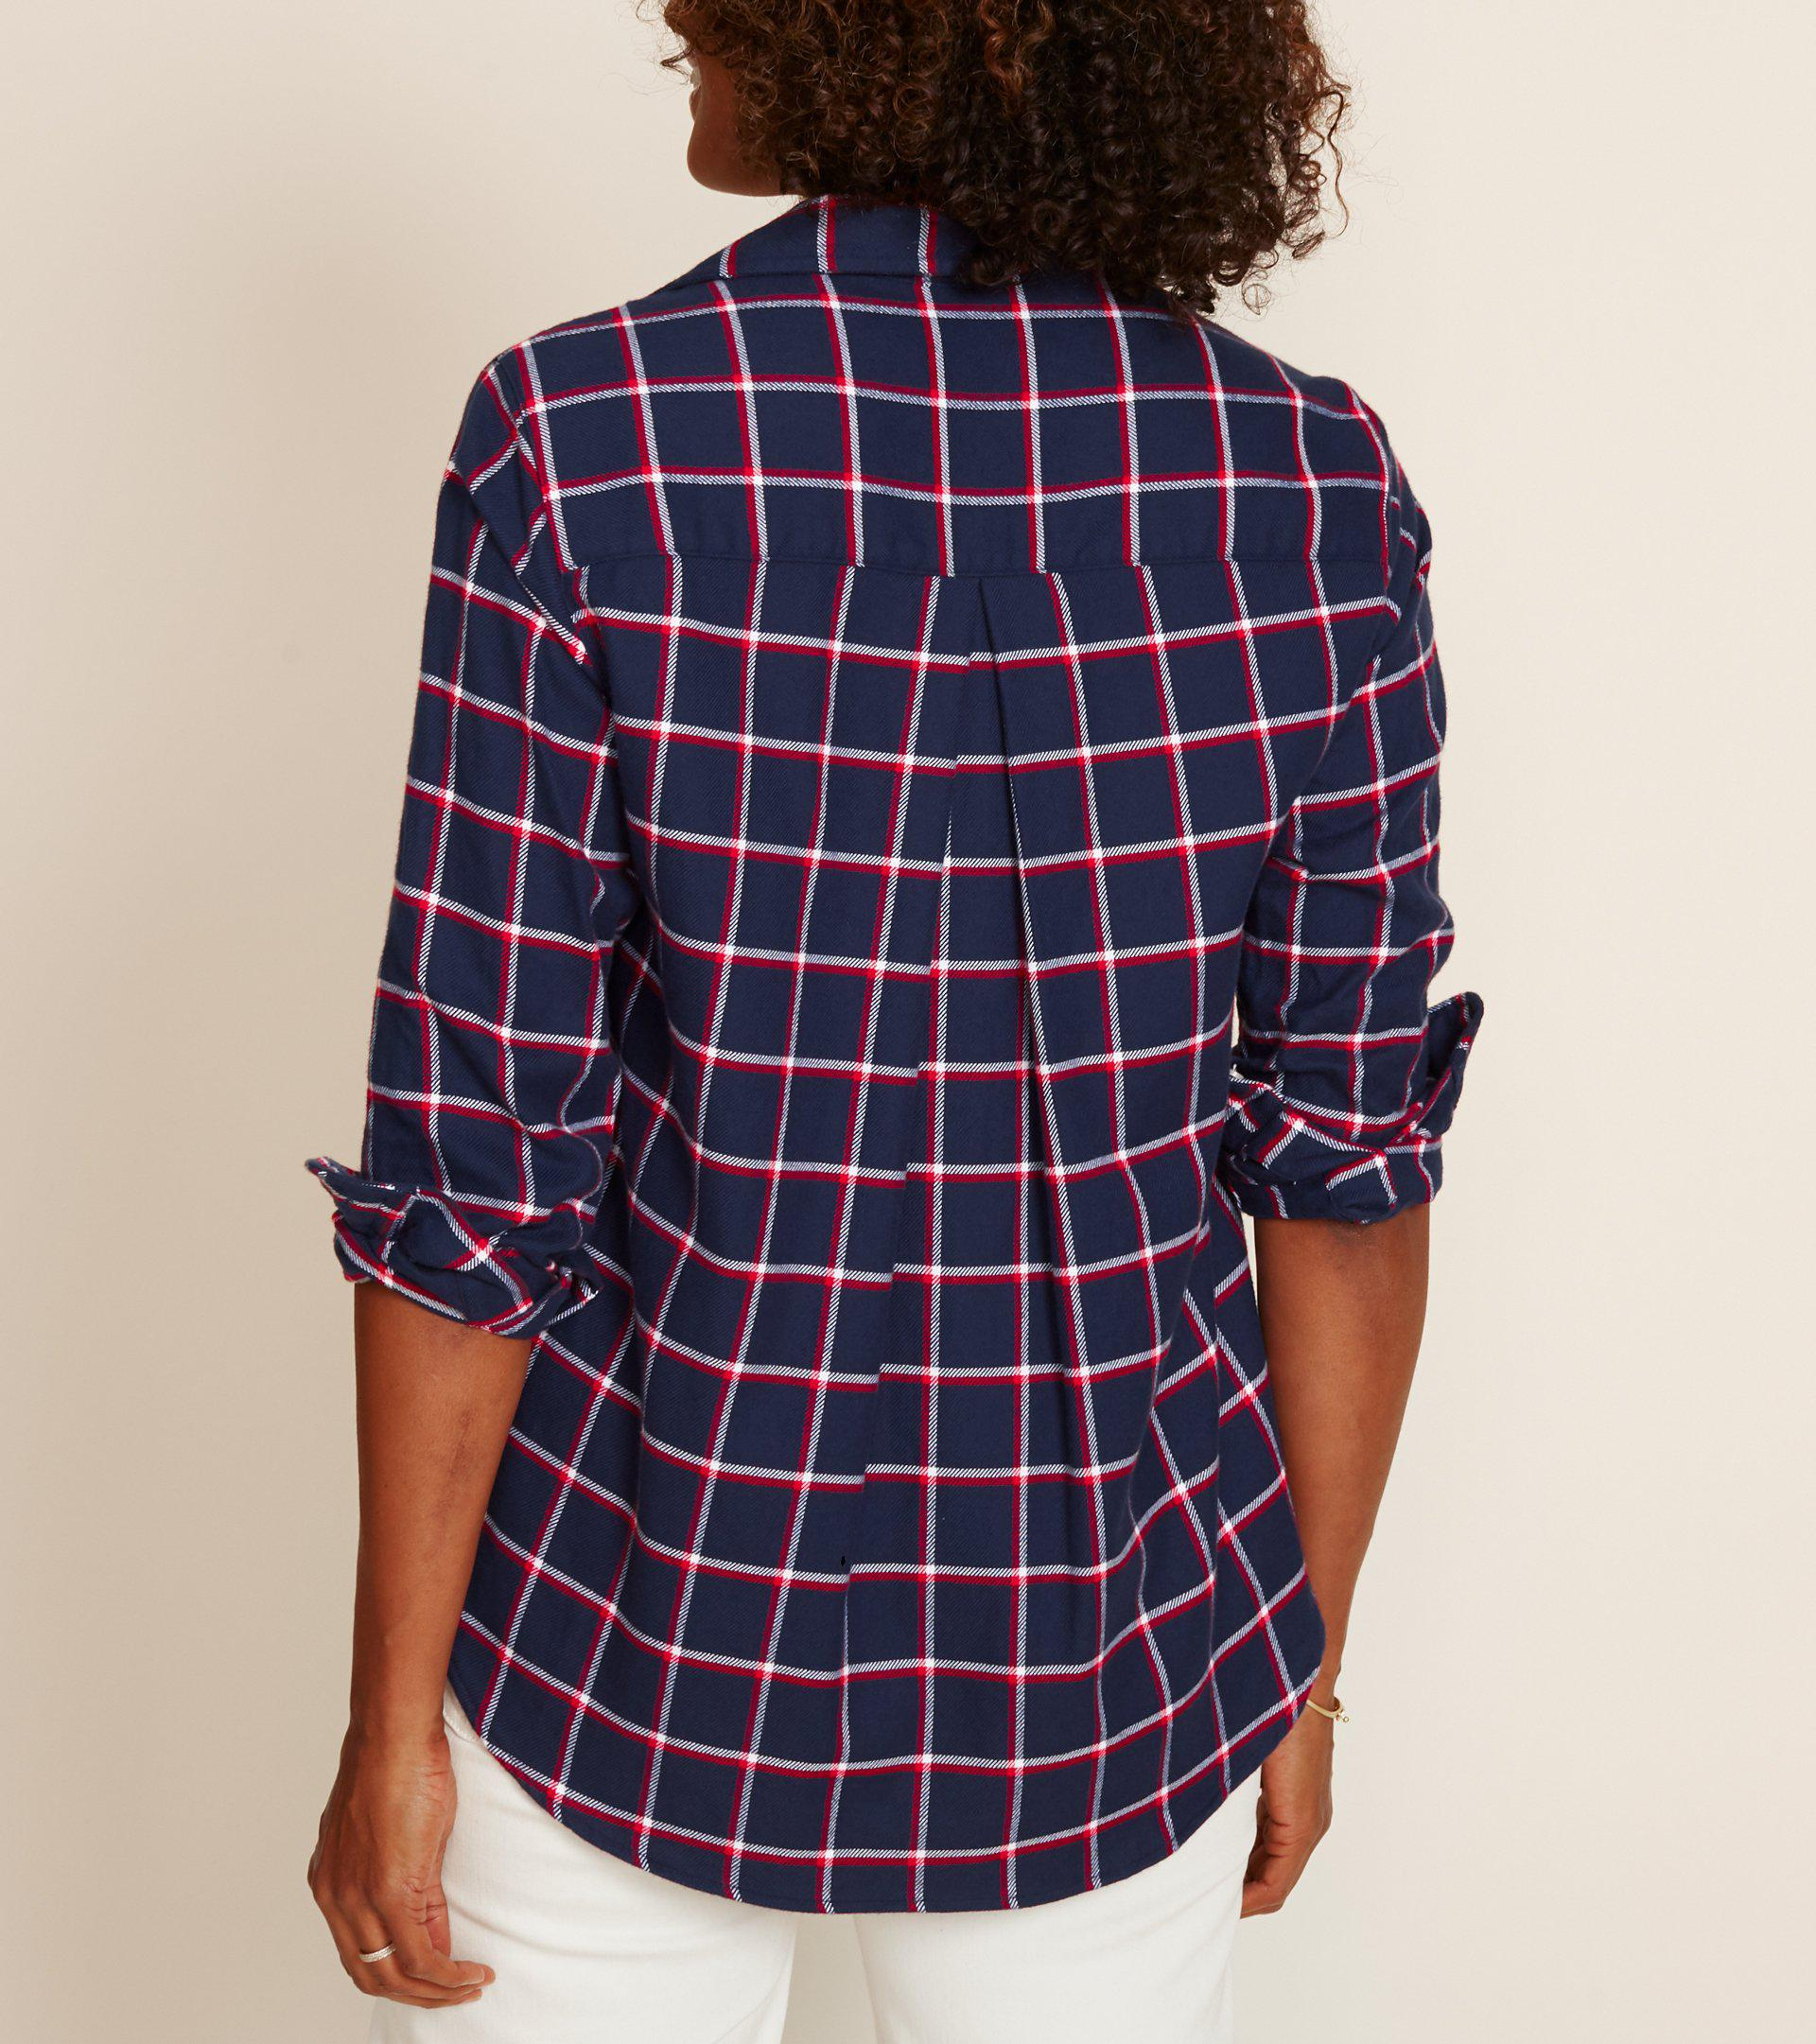 The Hero Navy with Red and White Plaid, Plush Flannel Final Sale 2